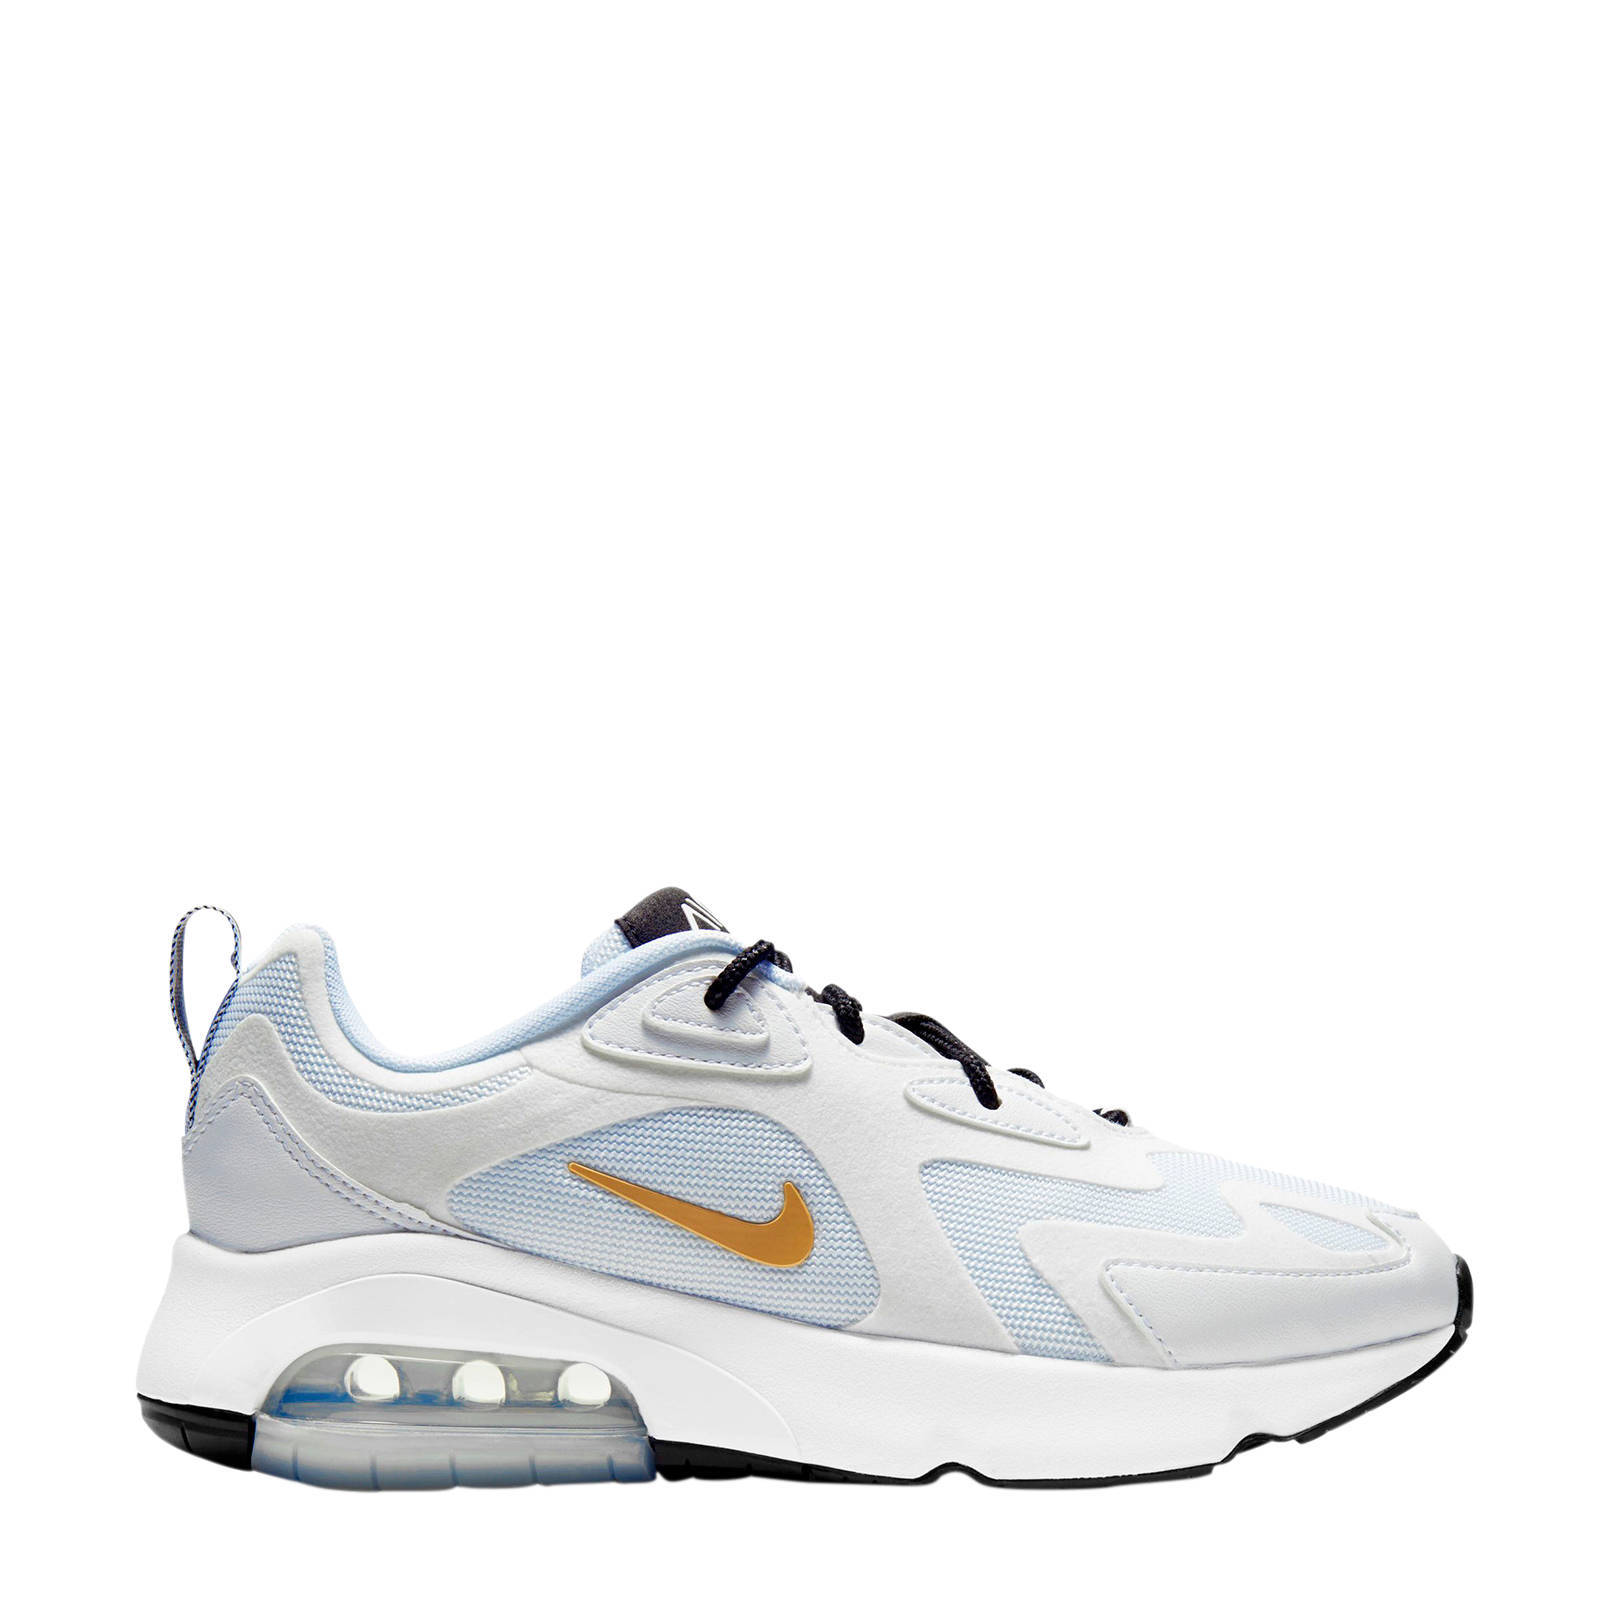 nike air max wit goud dames|nike air max wit goud dames